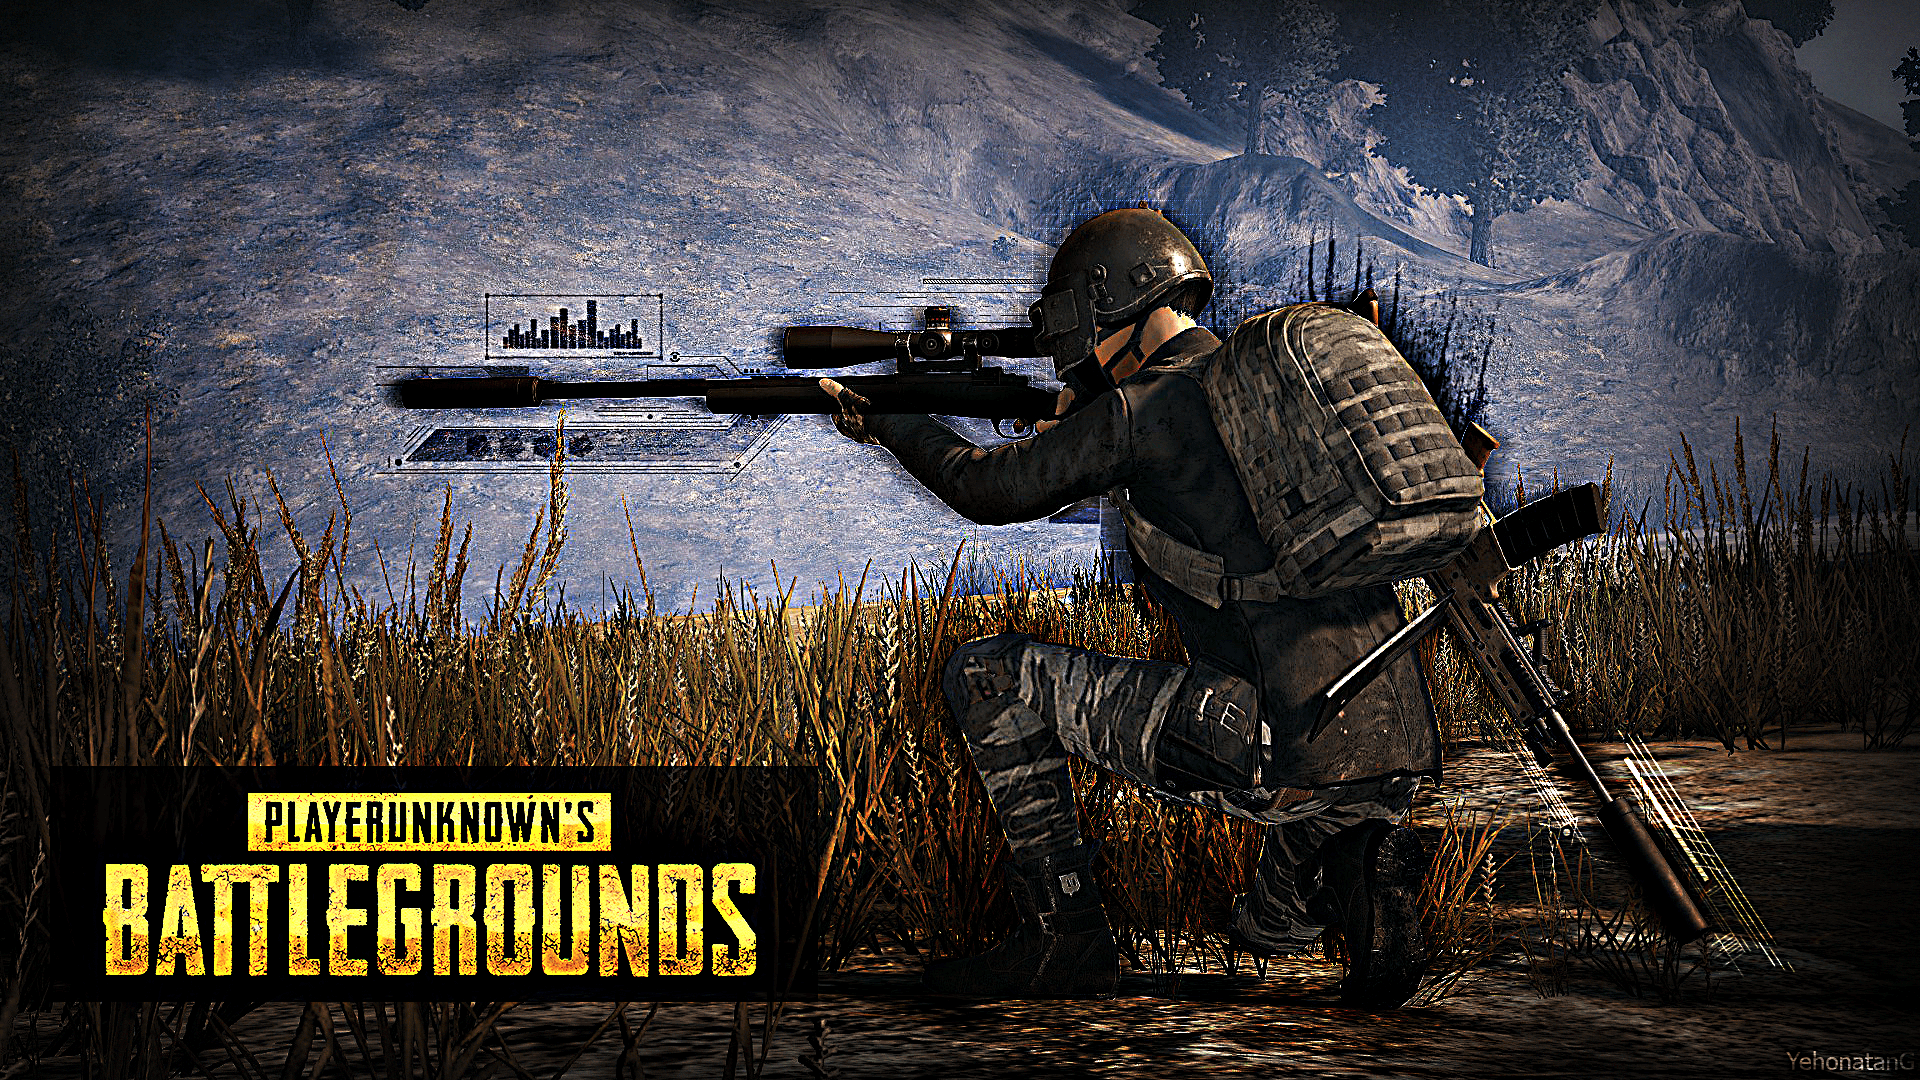 Gambar Pubg Hd Wallpaper: PUBG HD Wallpapers